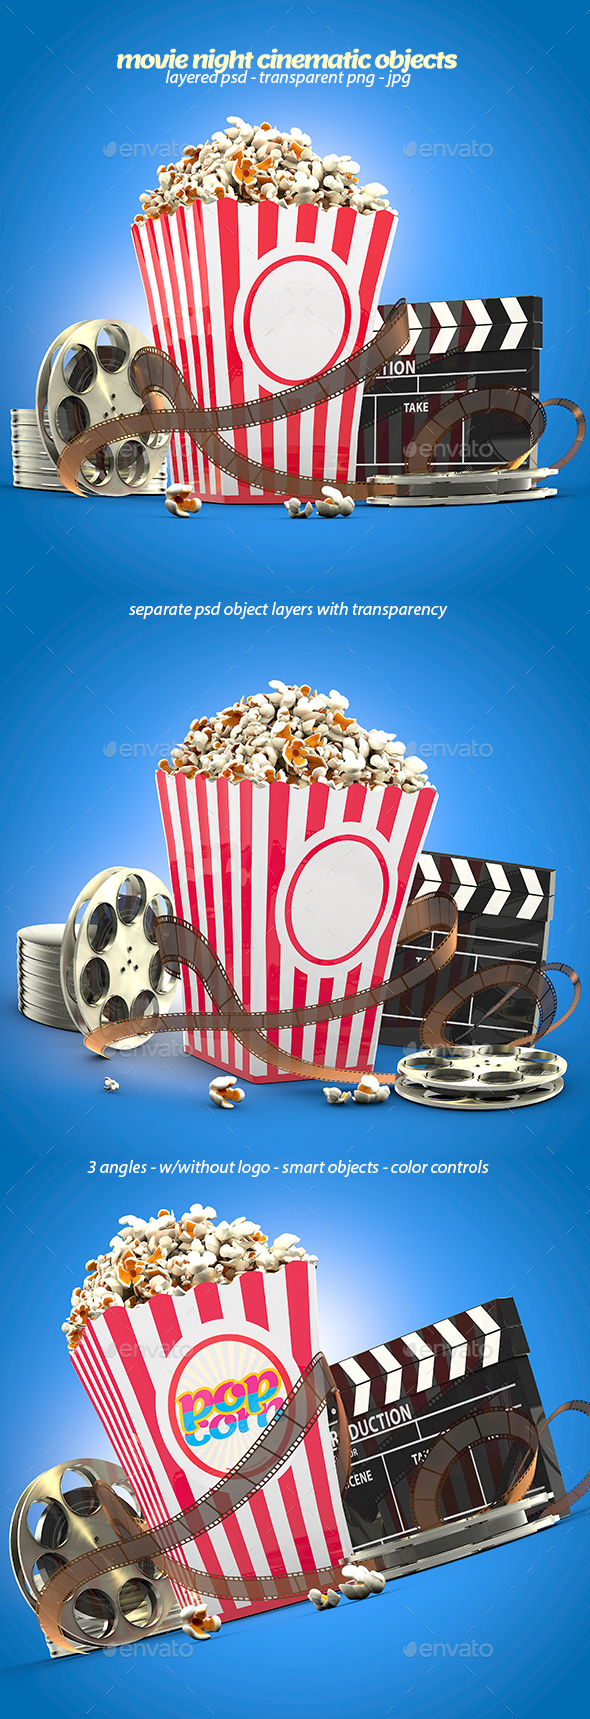 3D Object Renders & Graphic Designs - GraphicRiver